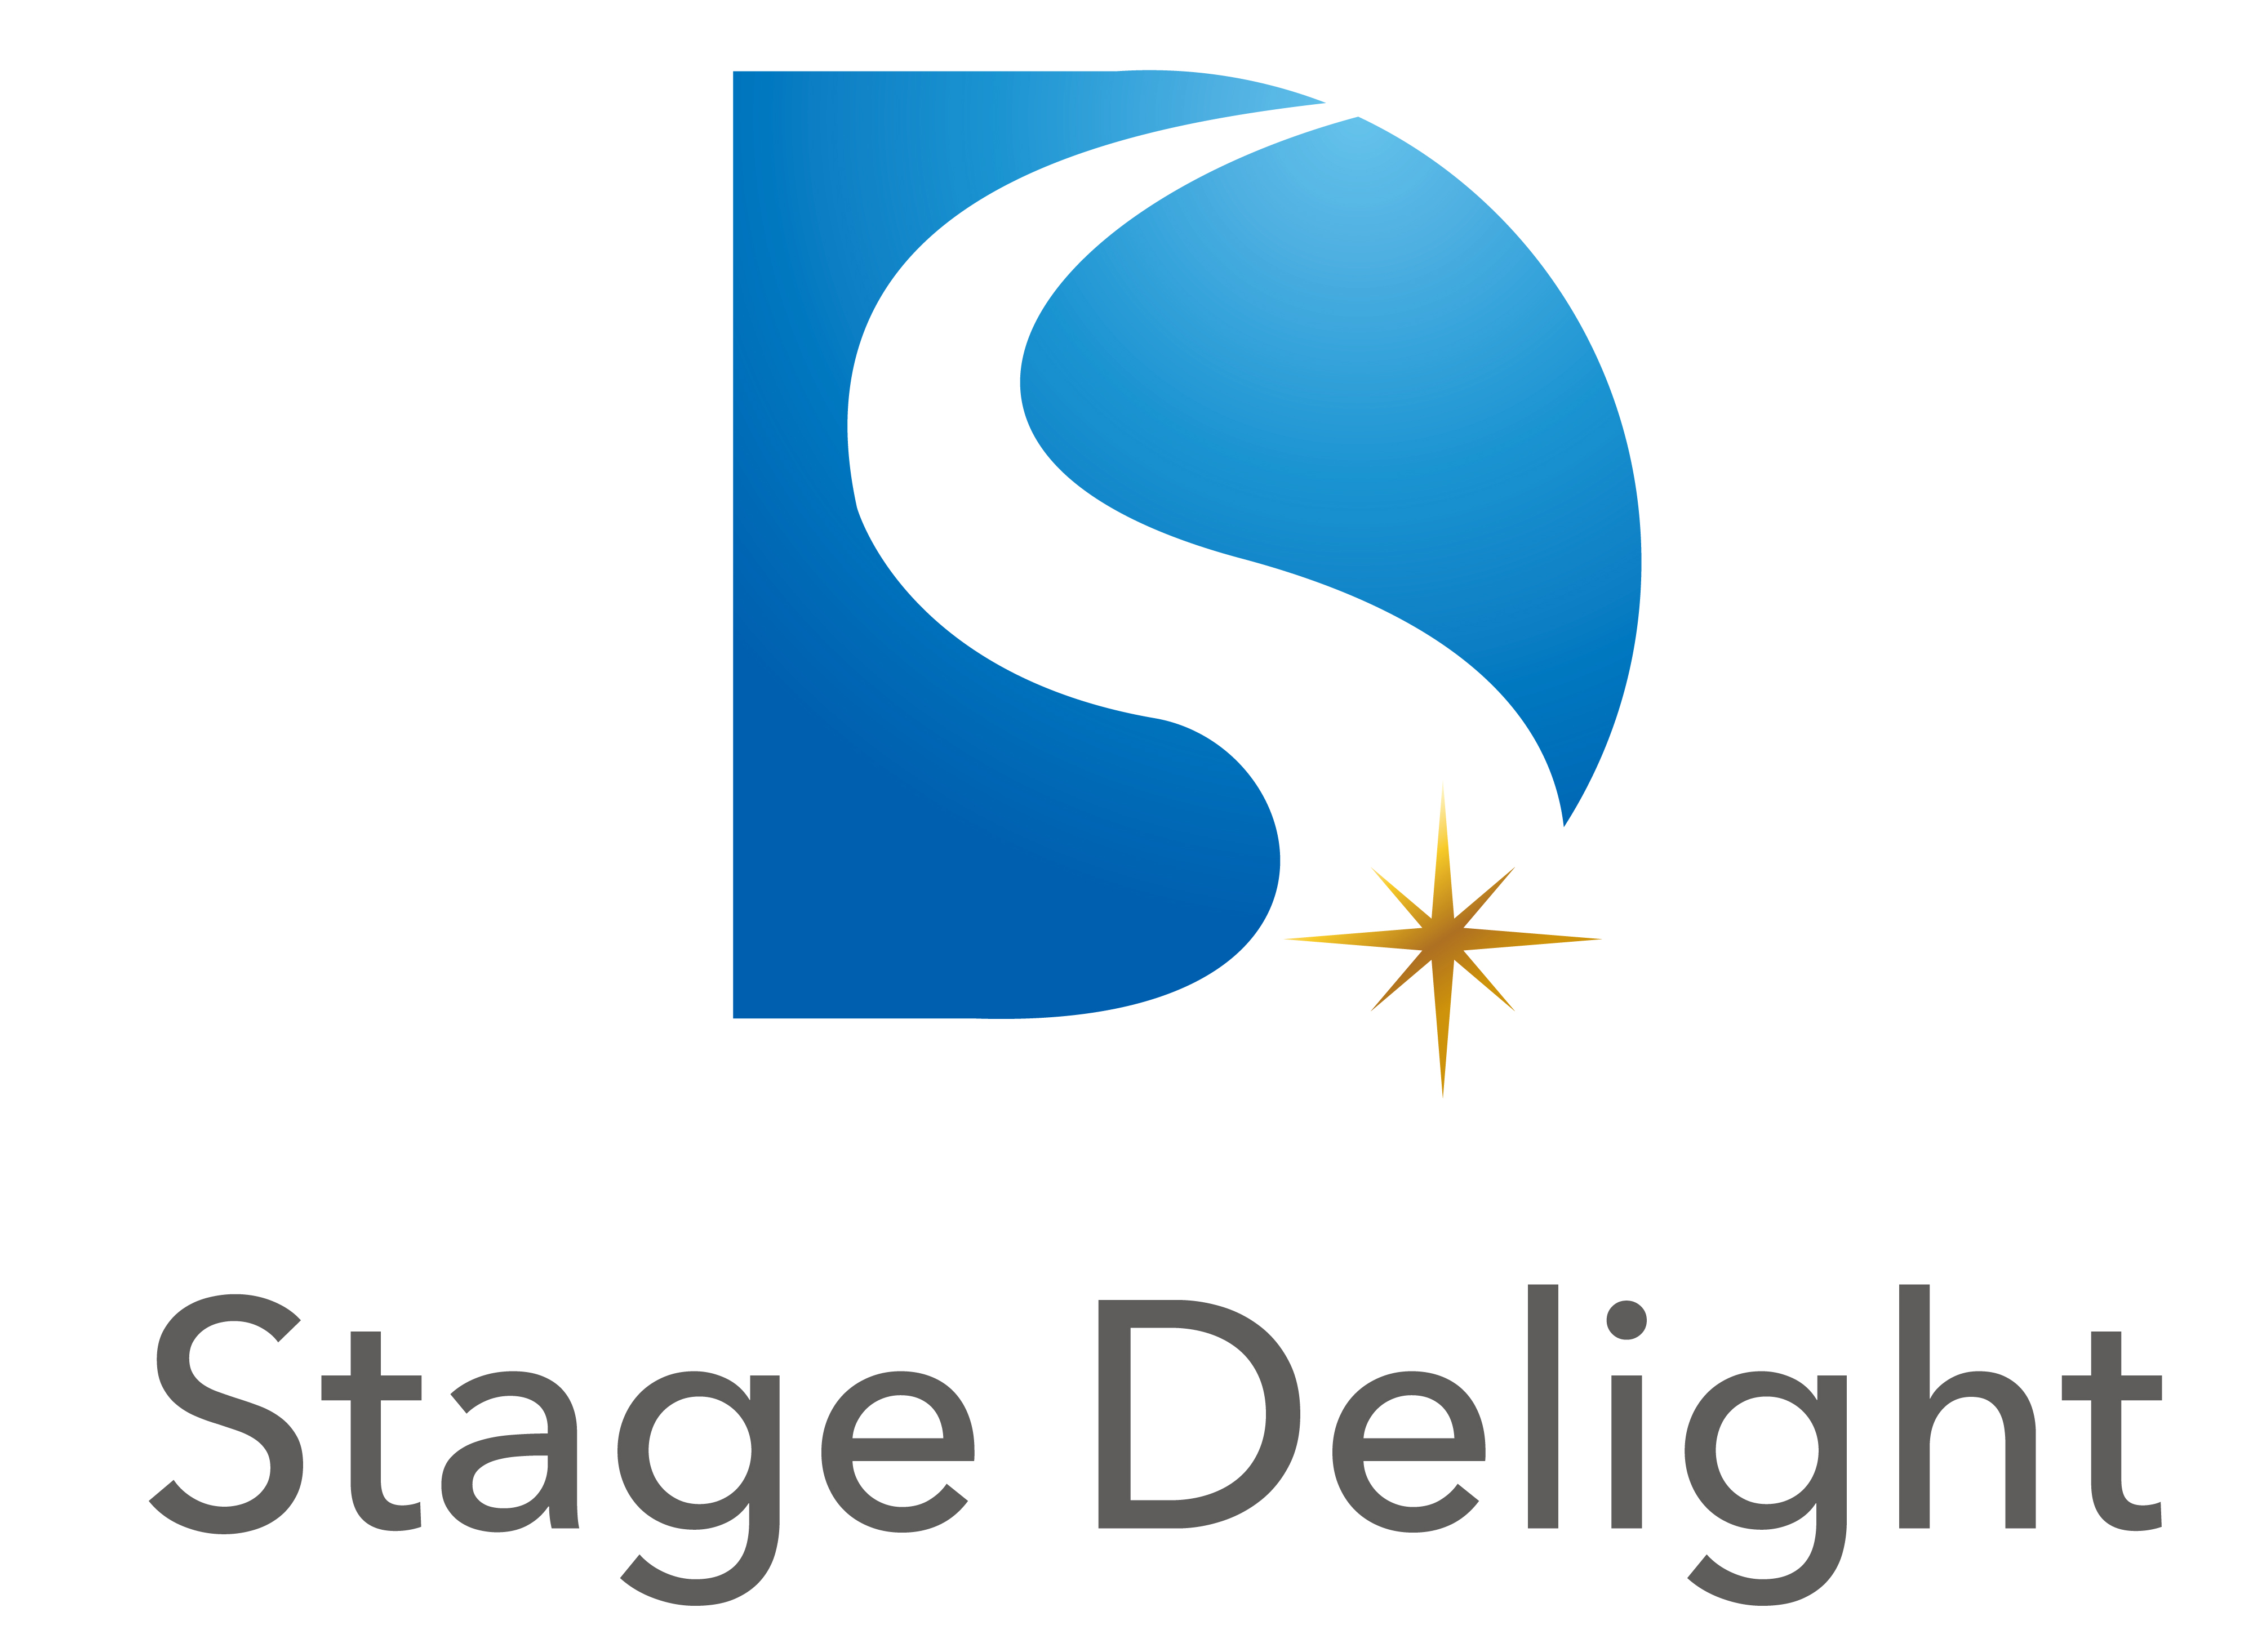 Stage Delight